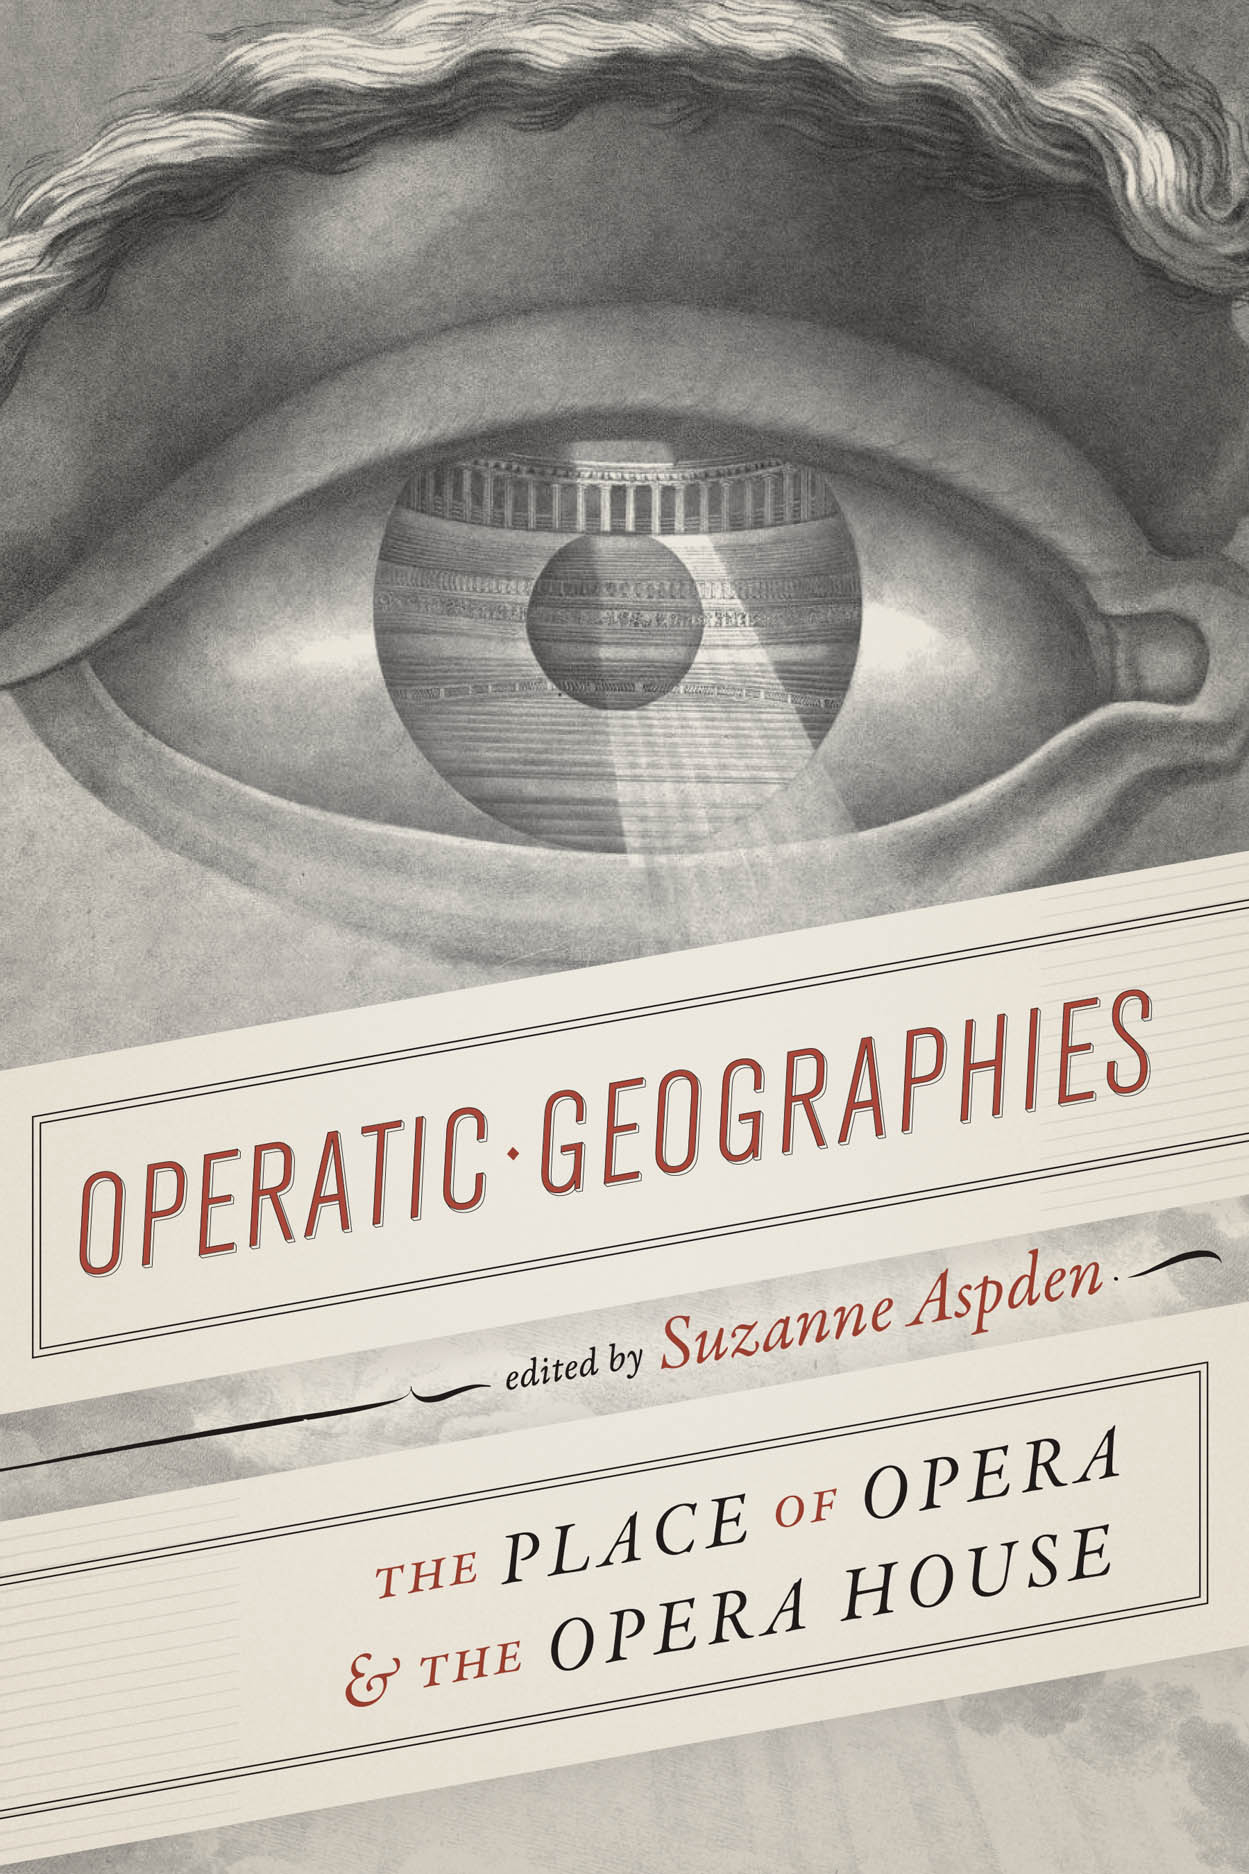 Operatic Geographies: The Place of Opera and the Opera House